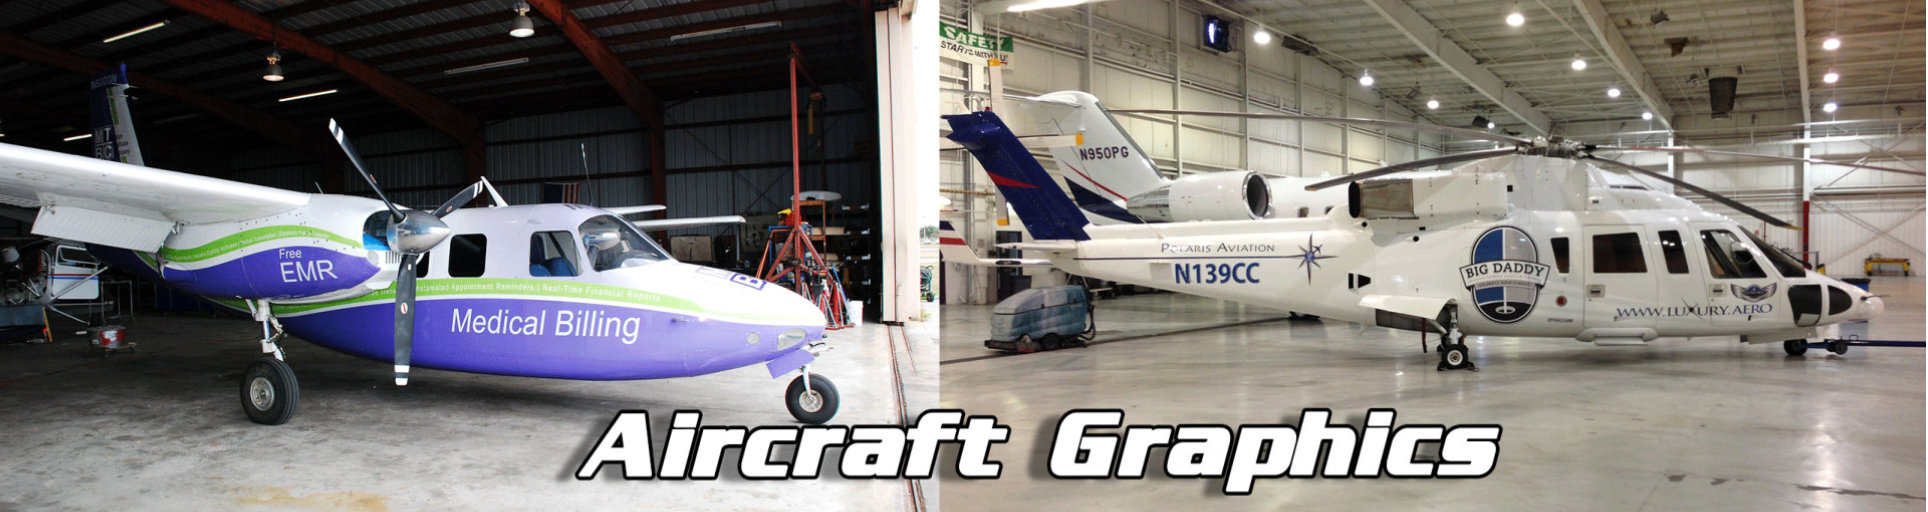 aircrafts with wrap designs